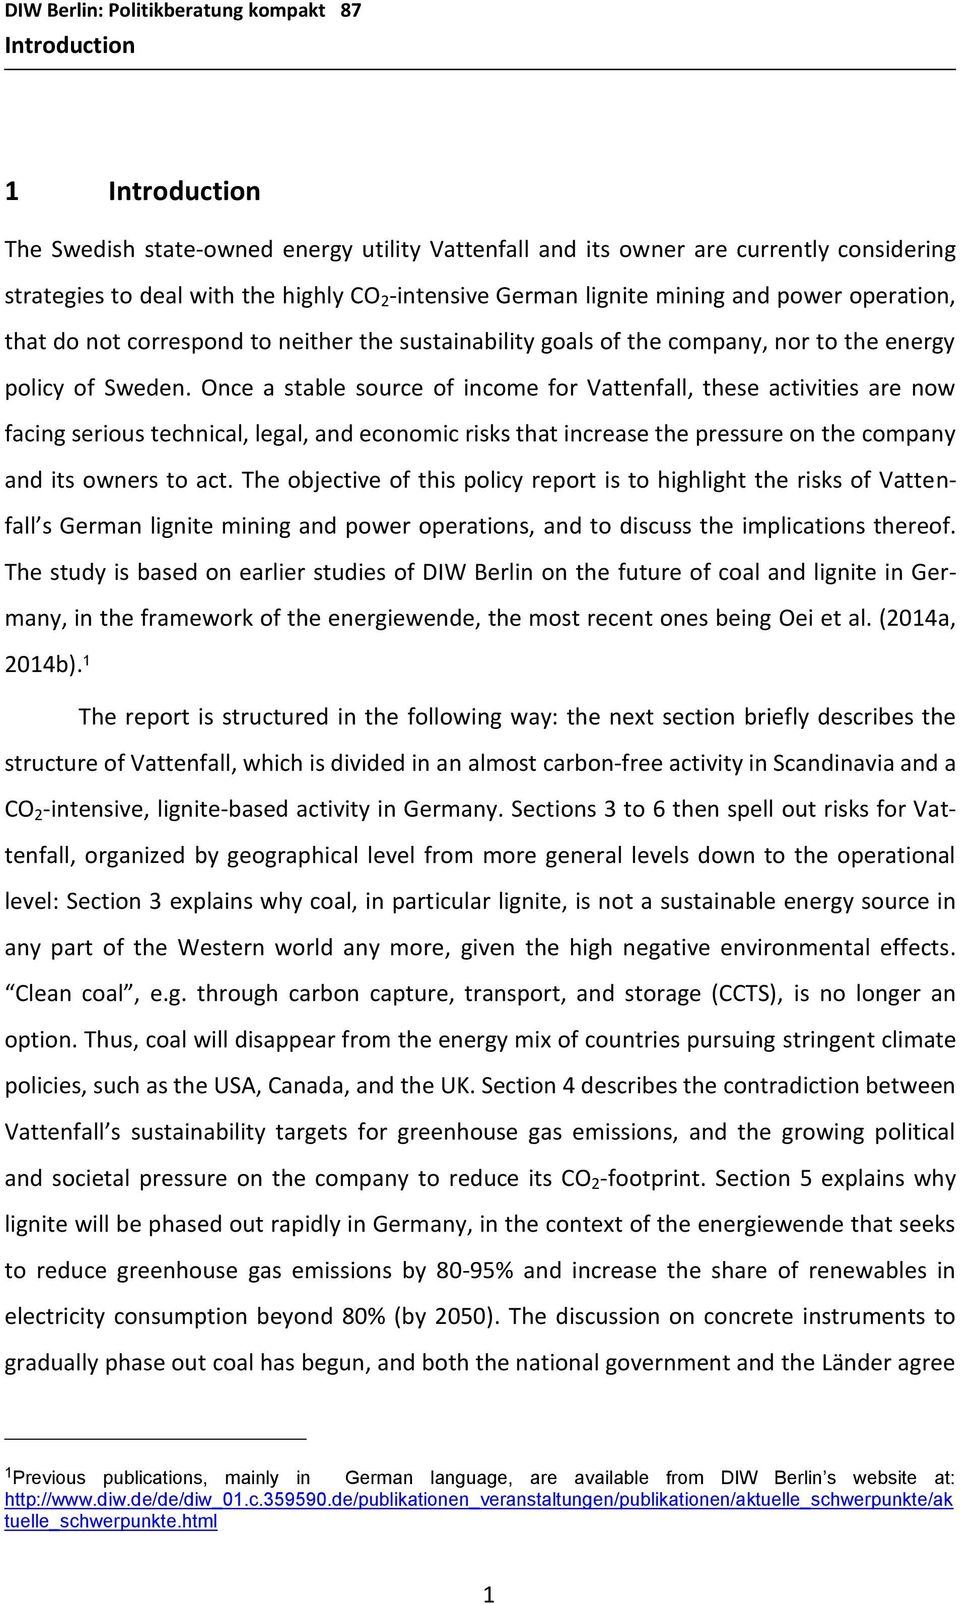 Once a stable source of income for Vattenfall, these activities are now facing serious technical, legal, and economic risks that increase the pressure on the company and its owners to act.